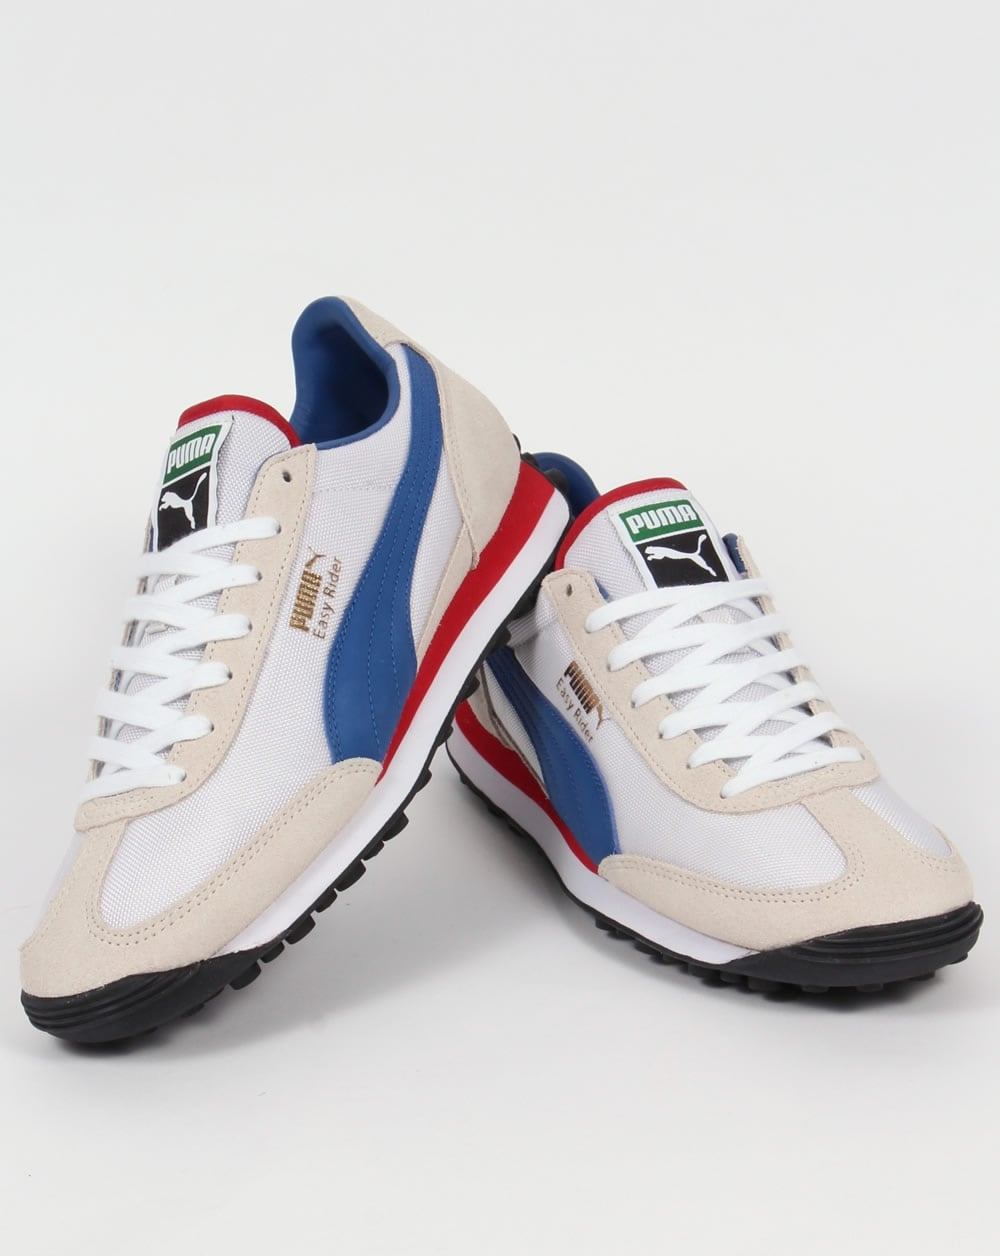 Puma Easy Rider Trainers White/True Blue